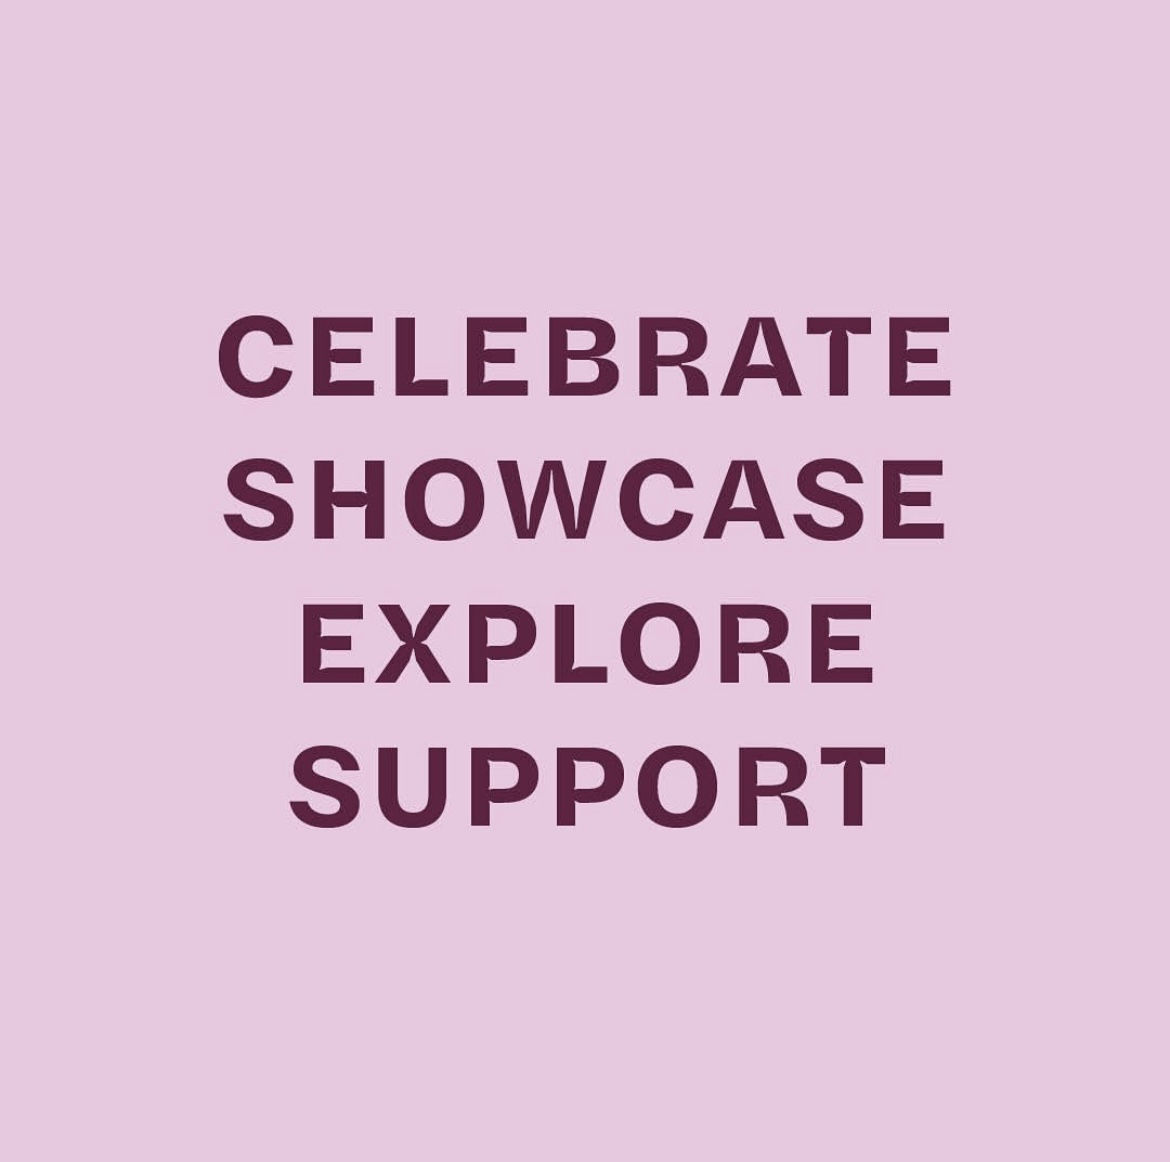 Celebrate, Showcase, Explore, Support